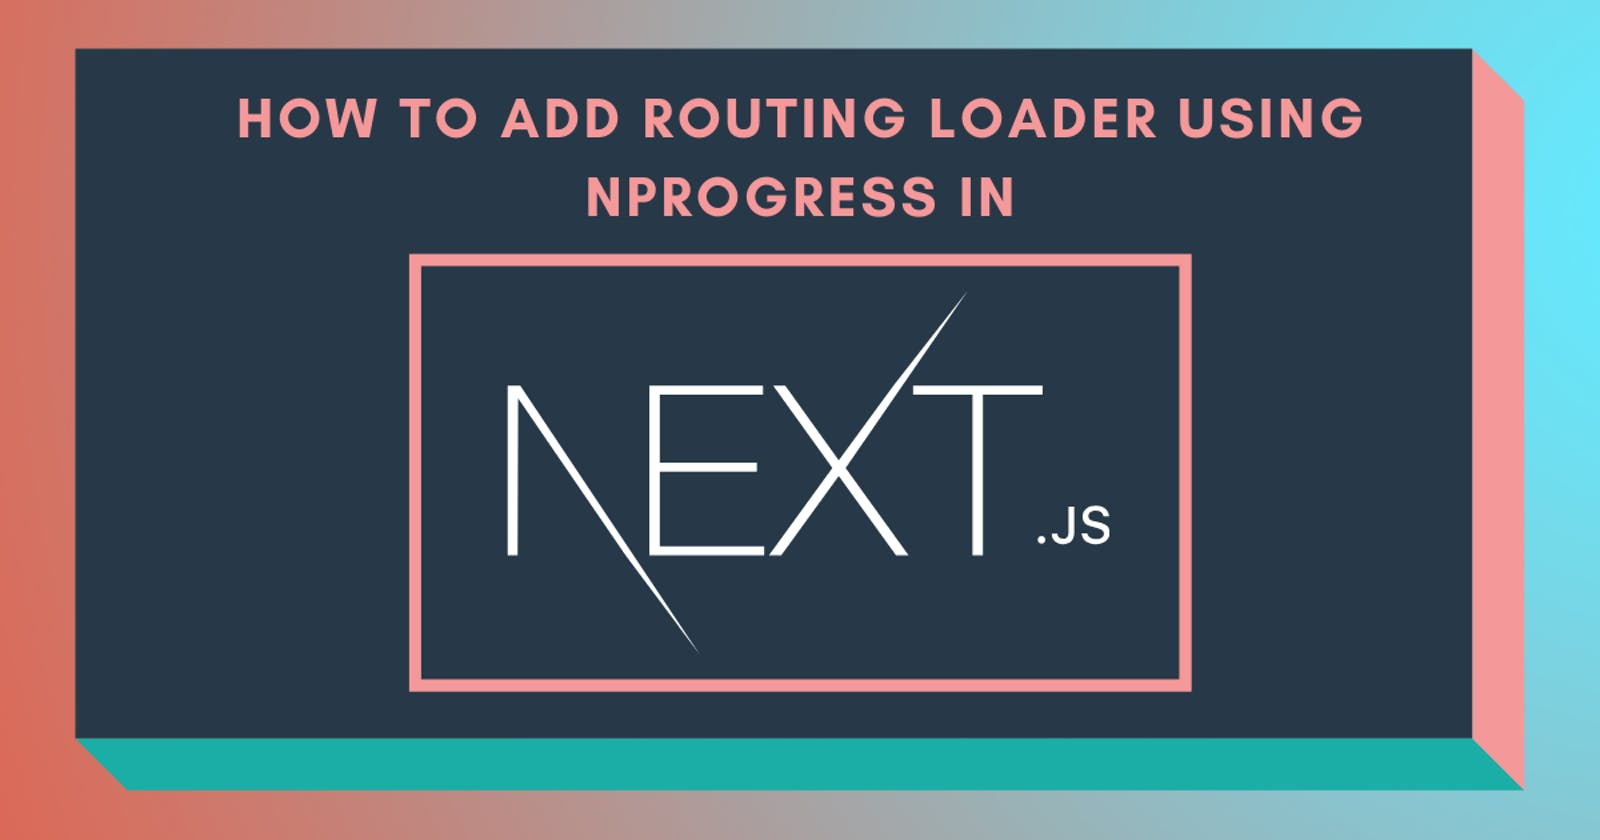 💫 How to add routing loader using nprogress in Next.js?